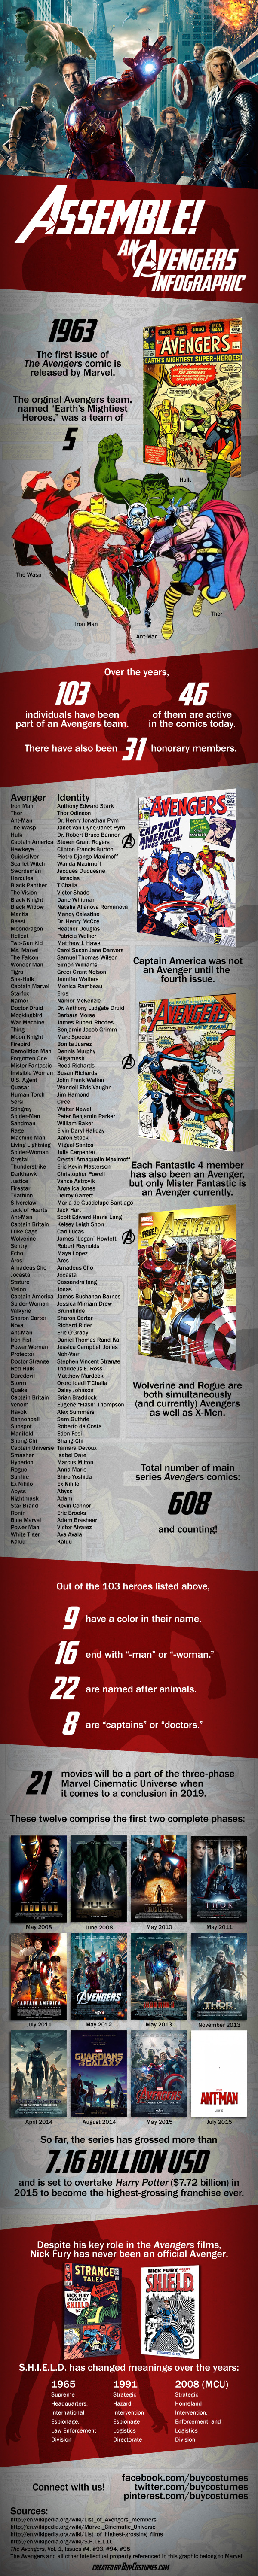 avengers-assemble-infographic